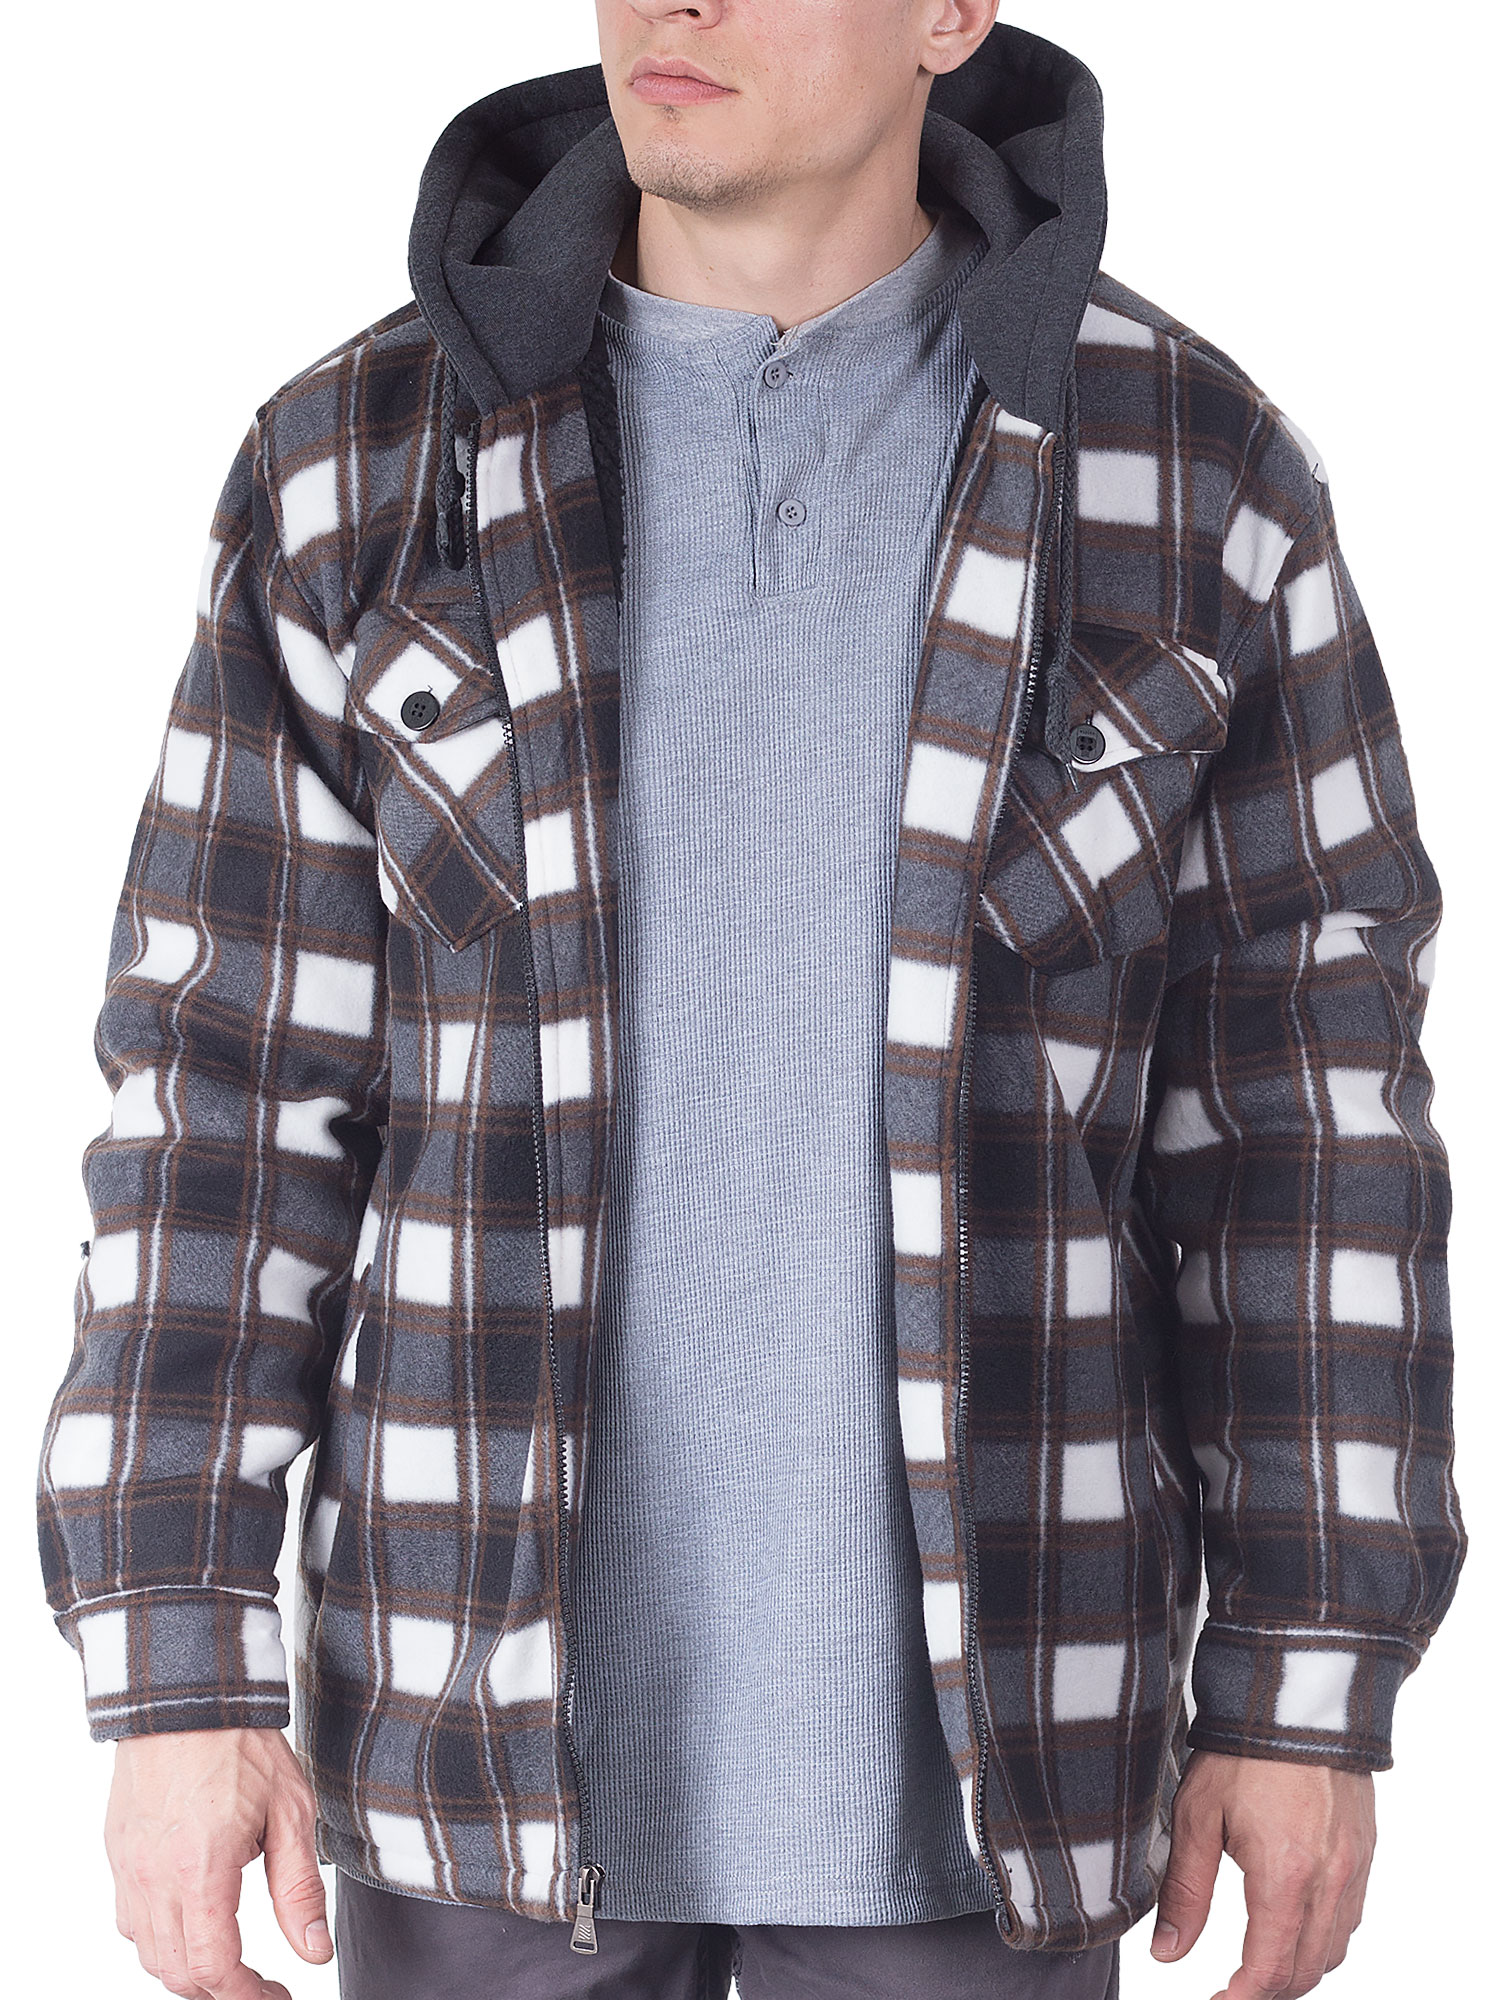 Winter Heavy Warm Sherpa Lined Fleece Plaid Flannel Jacket Men Plus Size S-5XL Big/&Tall Mens Coat